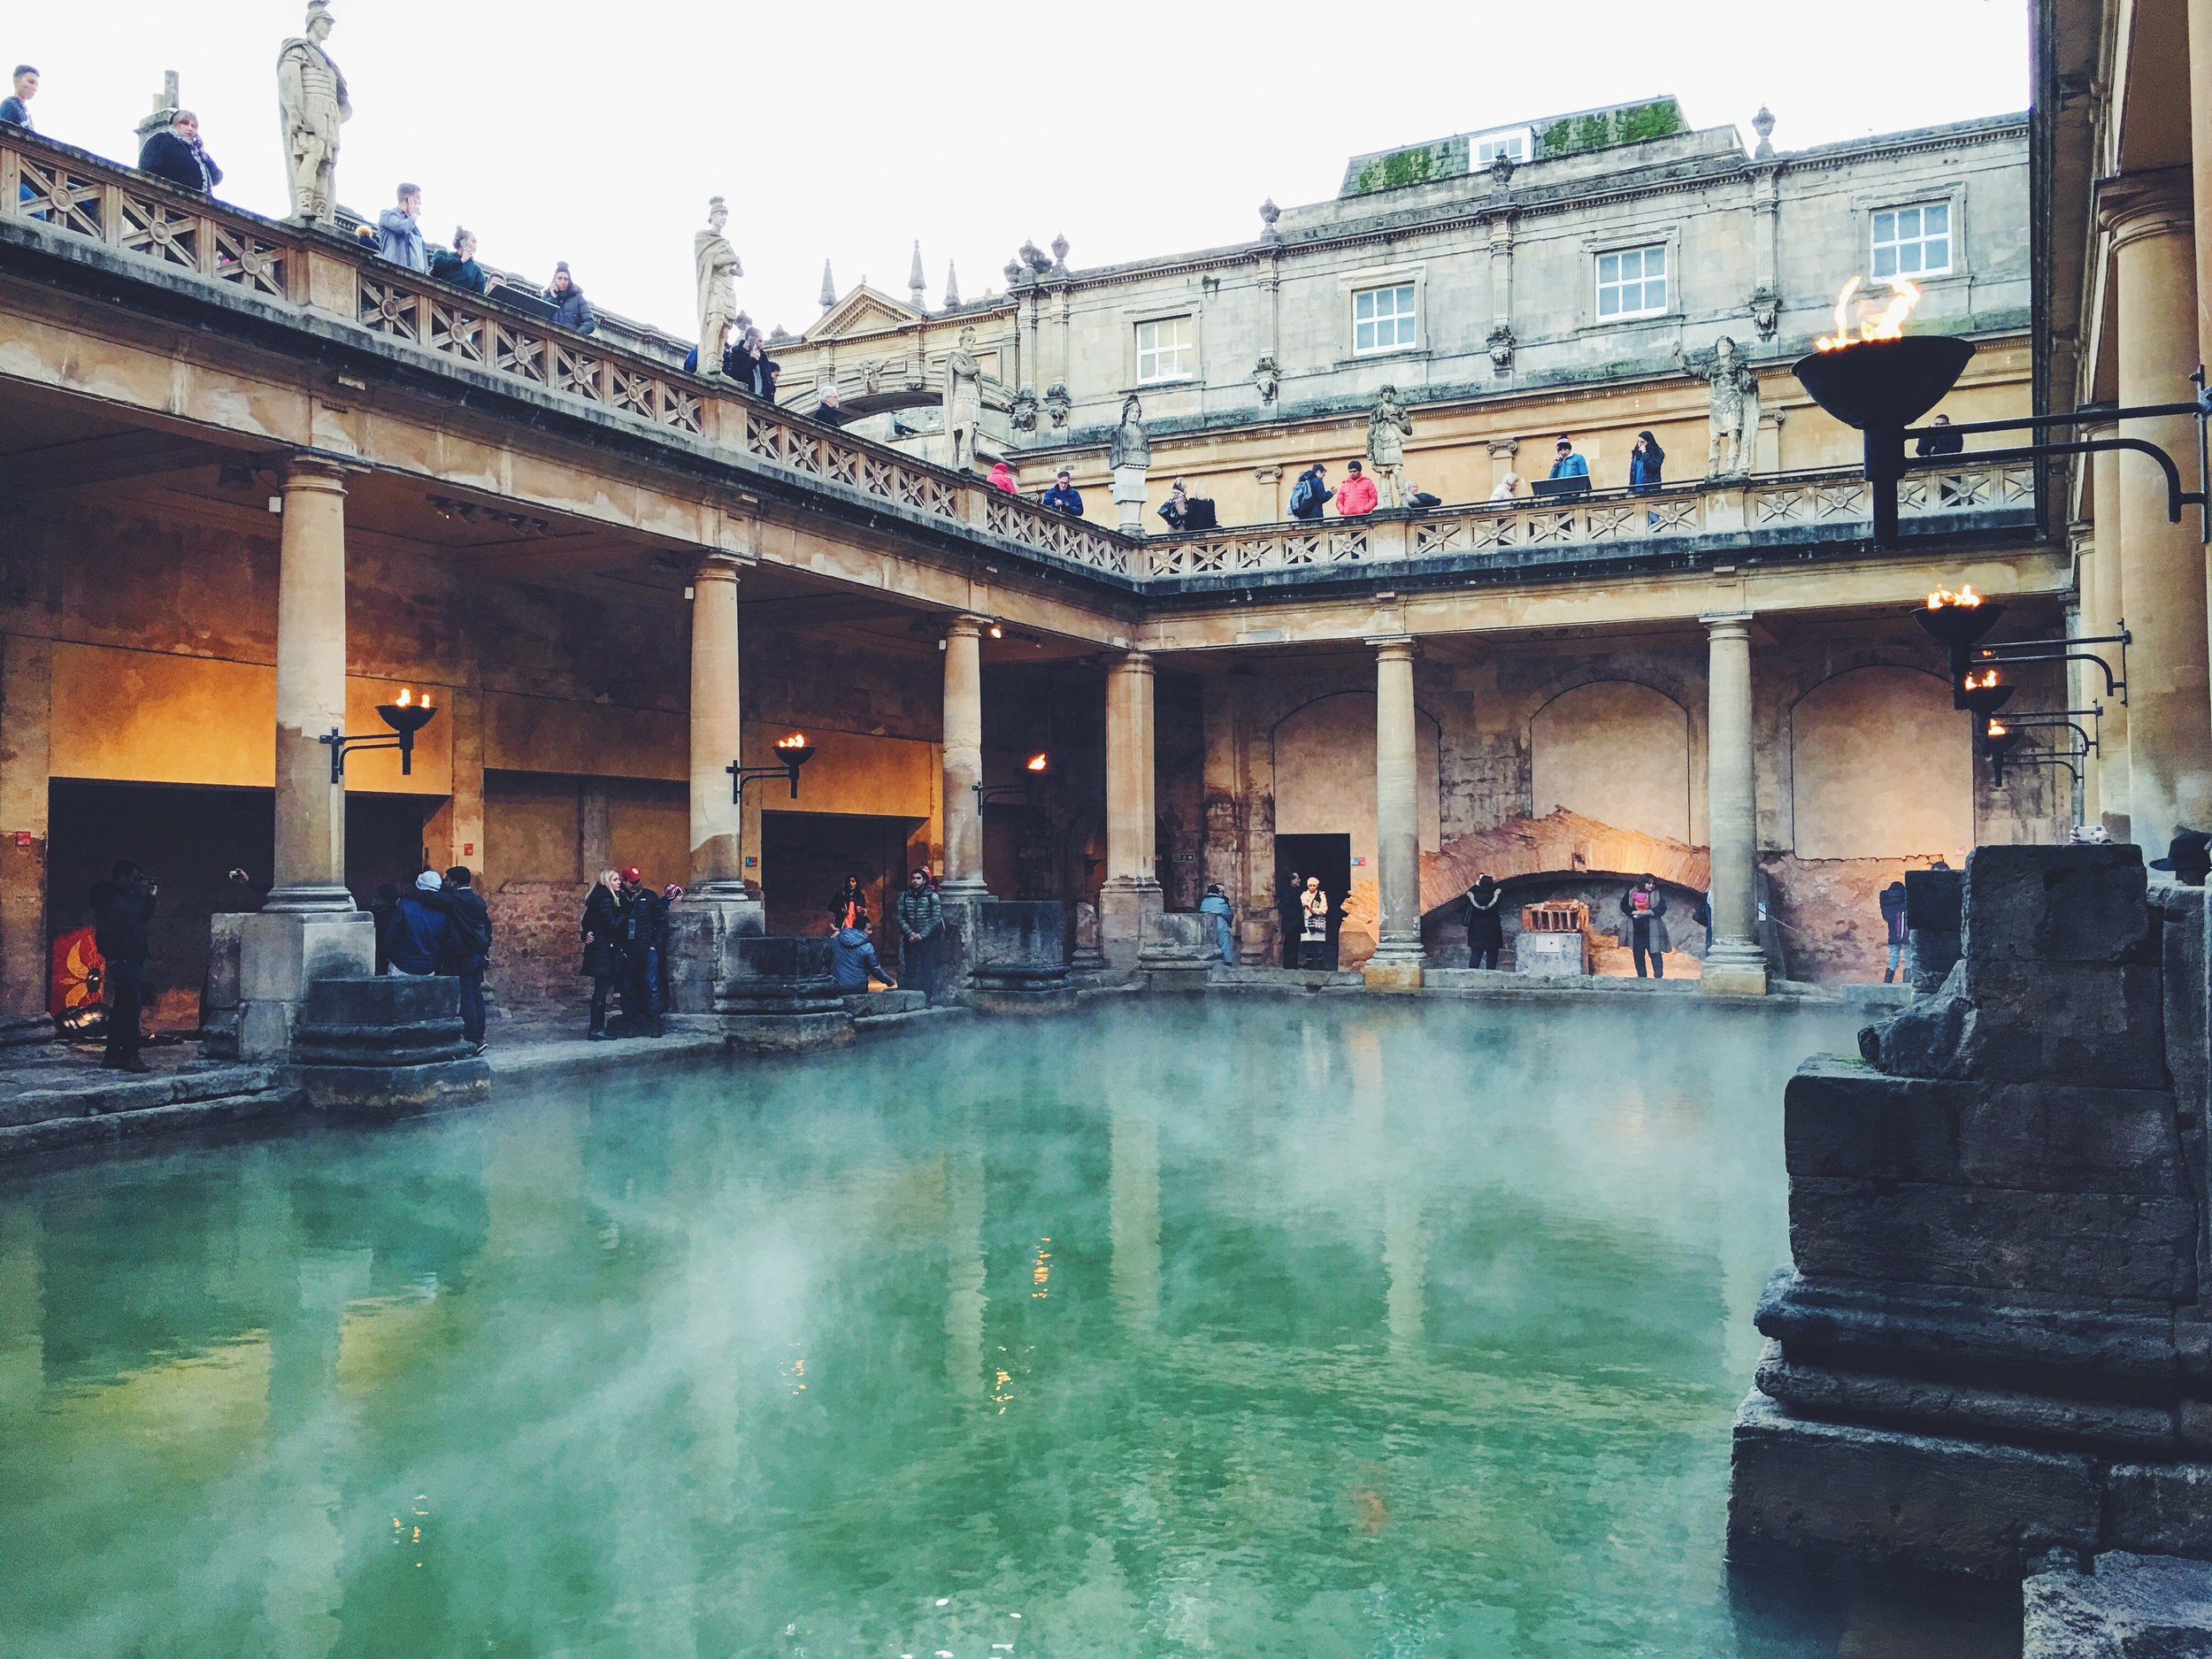 Ancient Roman Baths, Bath